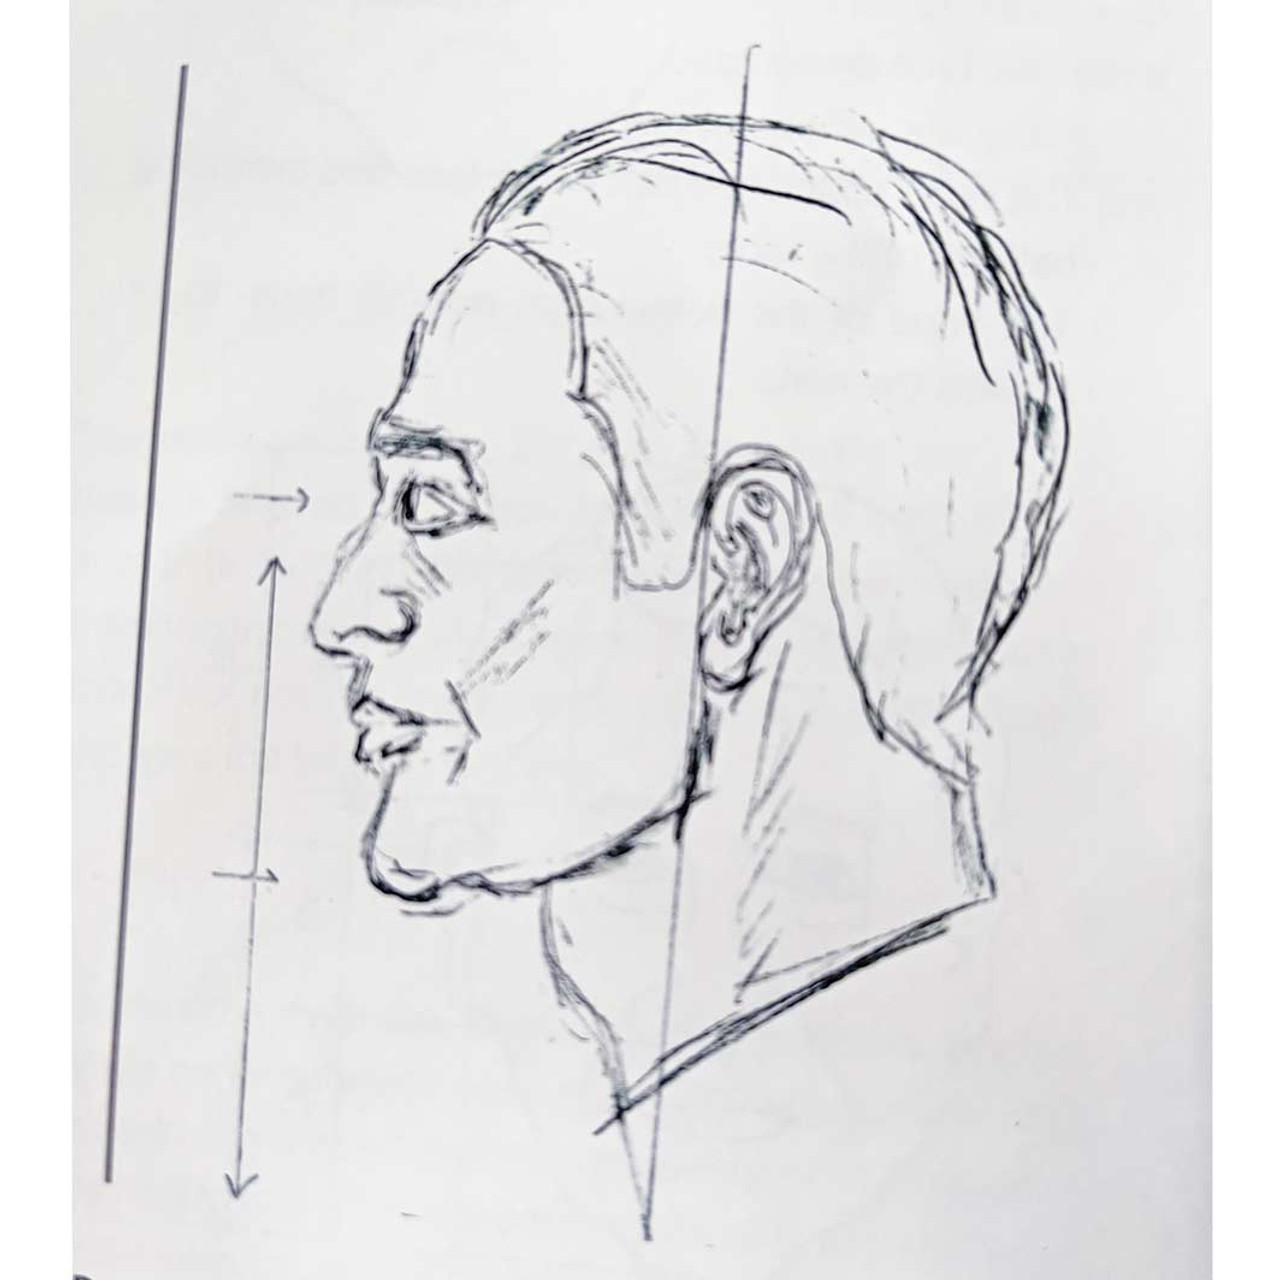 A layout of a face referred to in the book by Vic Hood.